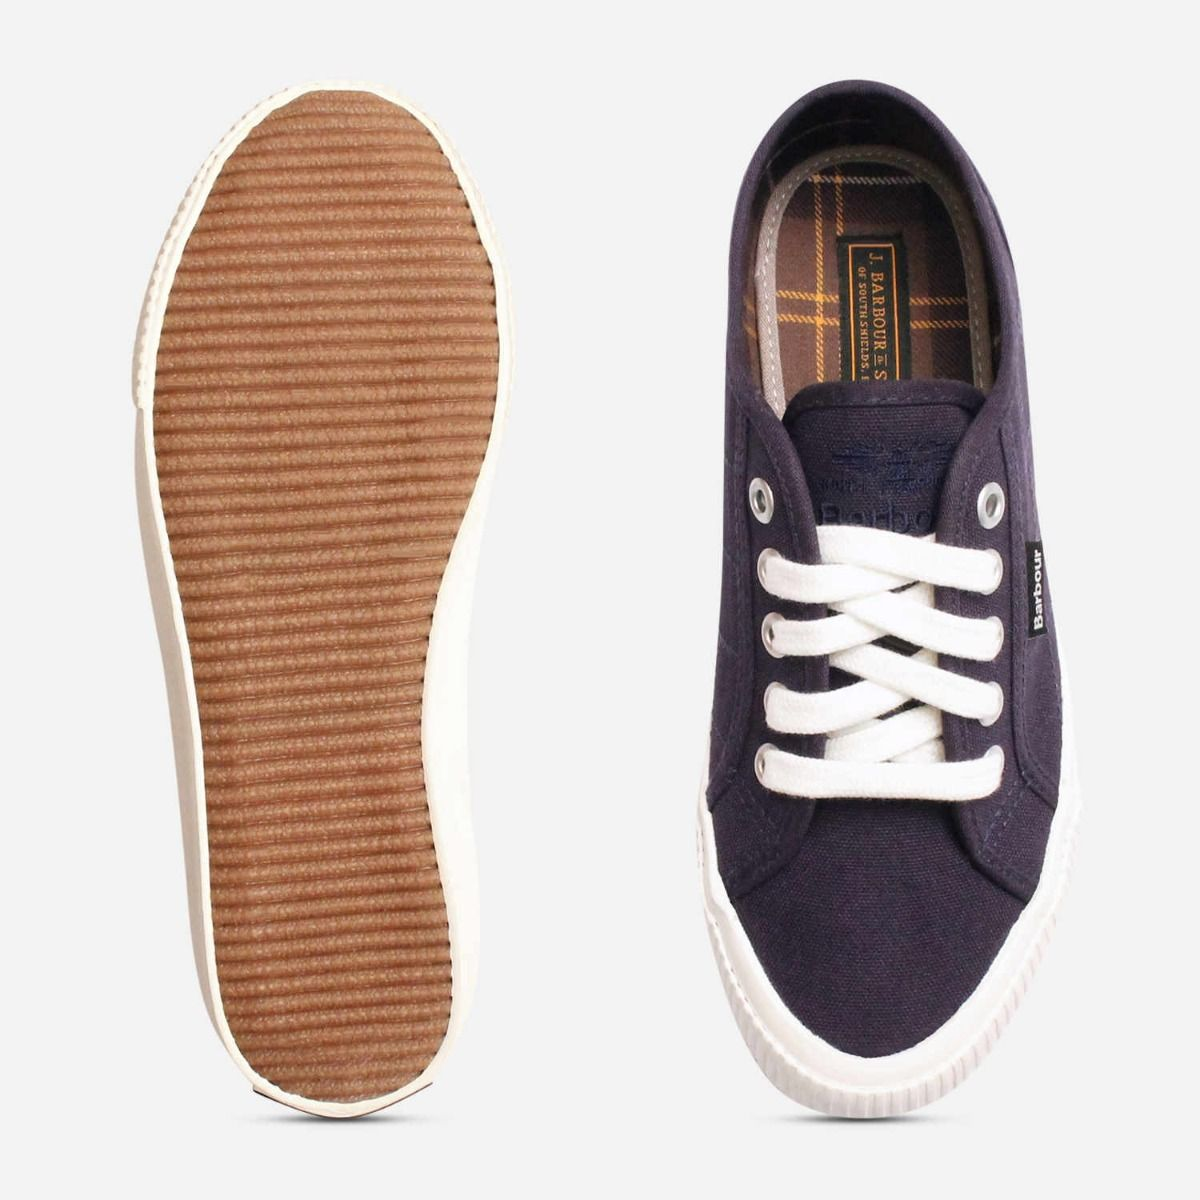 Barbour Womens Luna II Trainer Shoes in